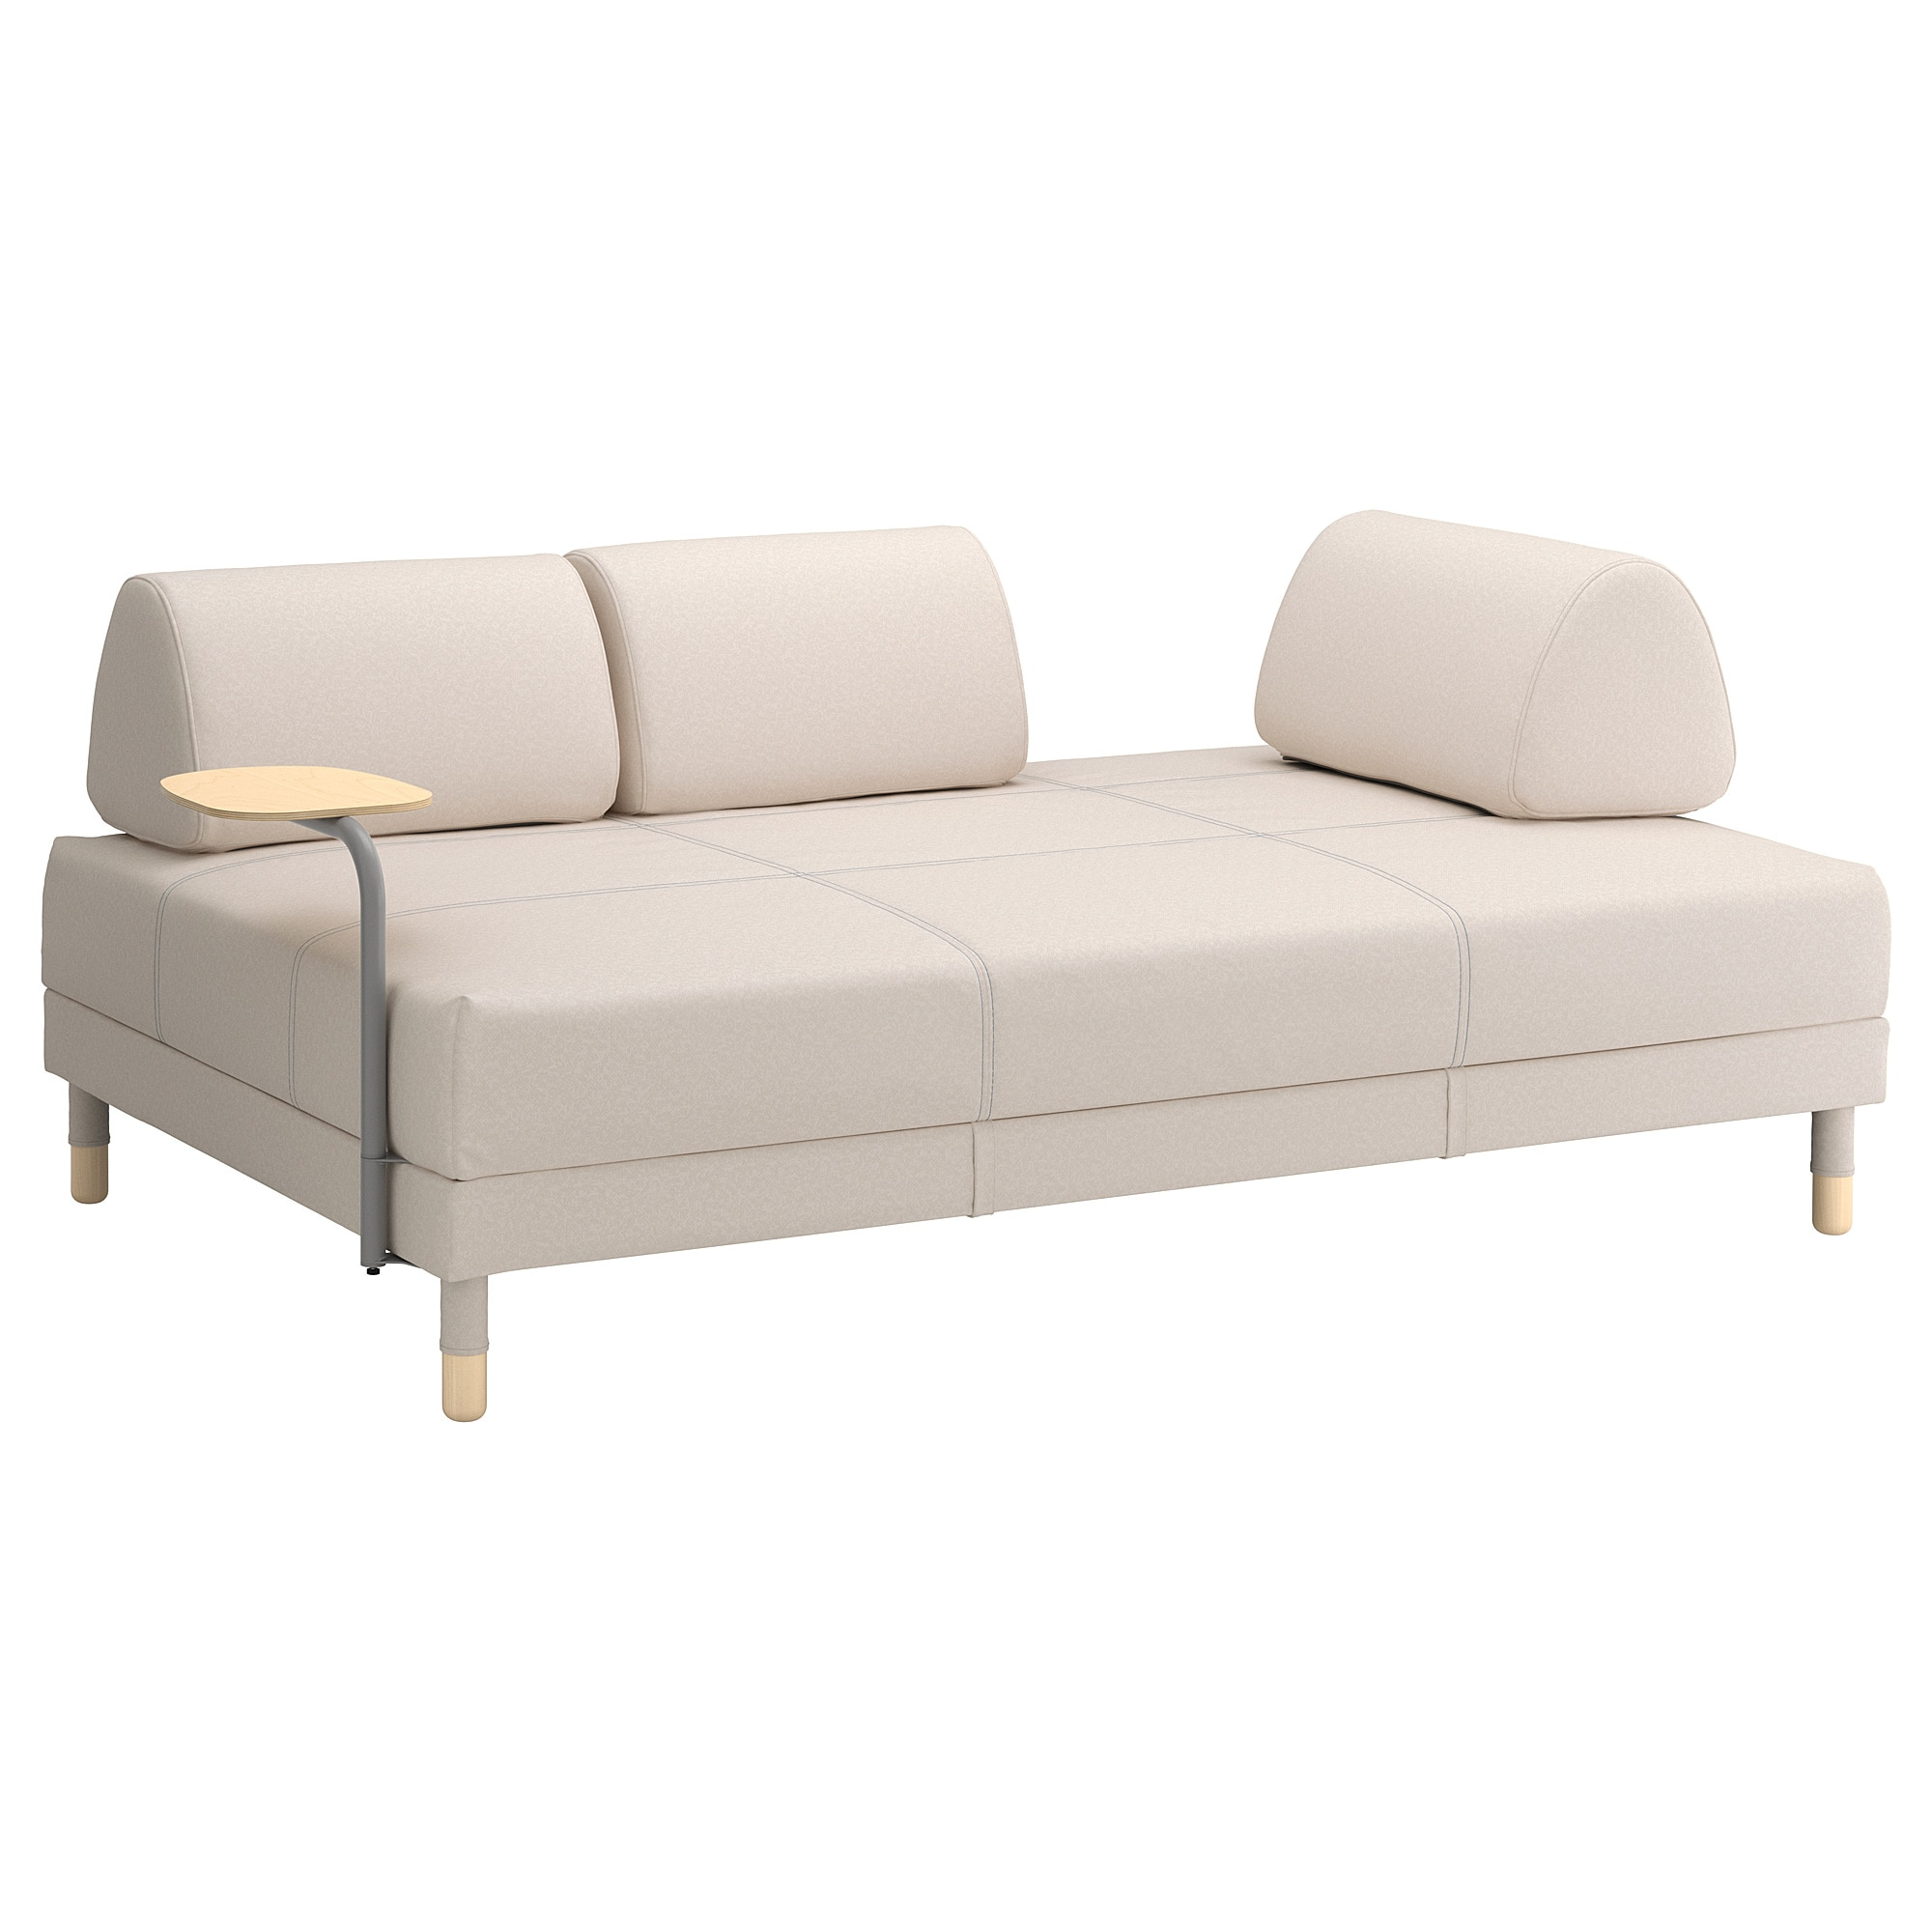 Sofá Cama Chaise Longue 87dx Article with Tag Inexpensive sofa and Loveseat Ewubap